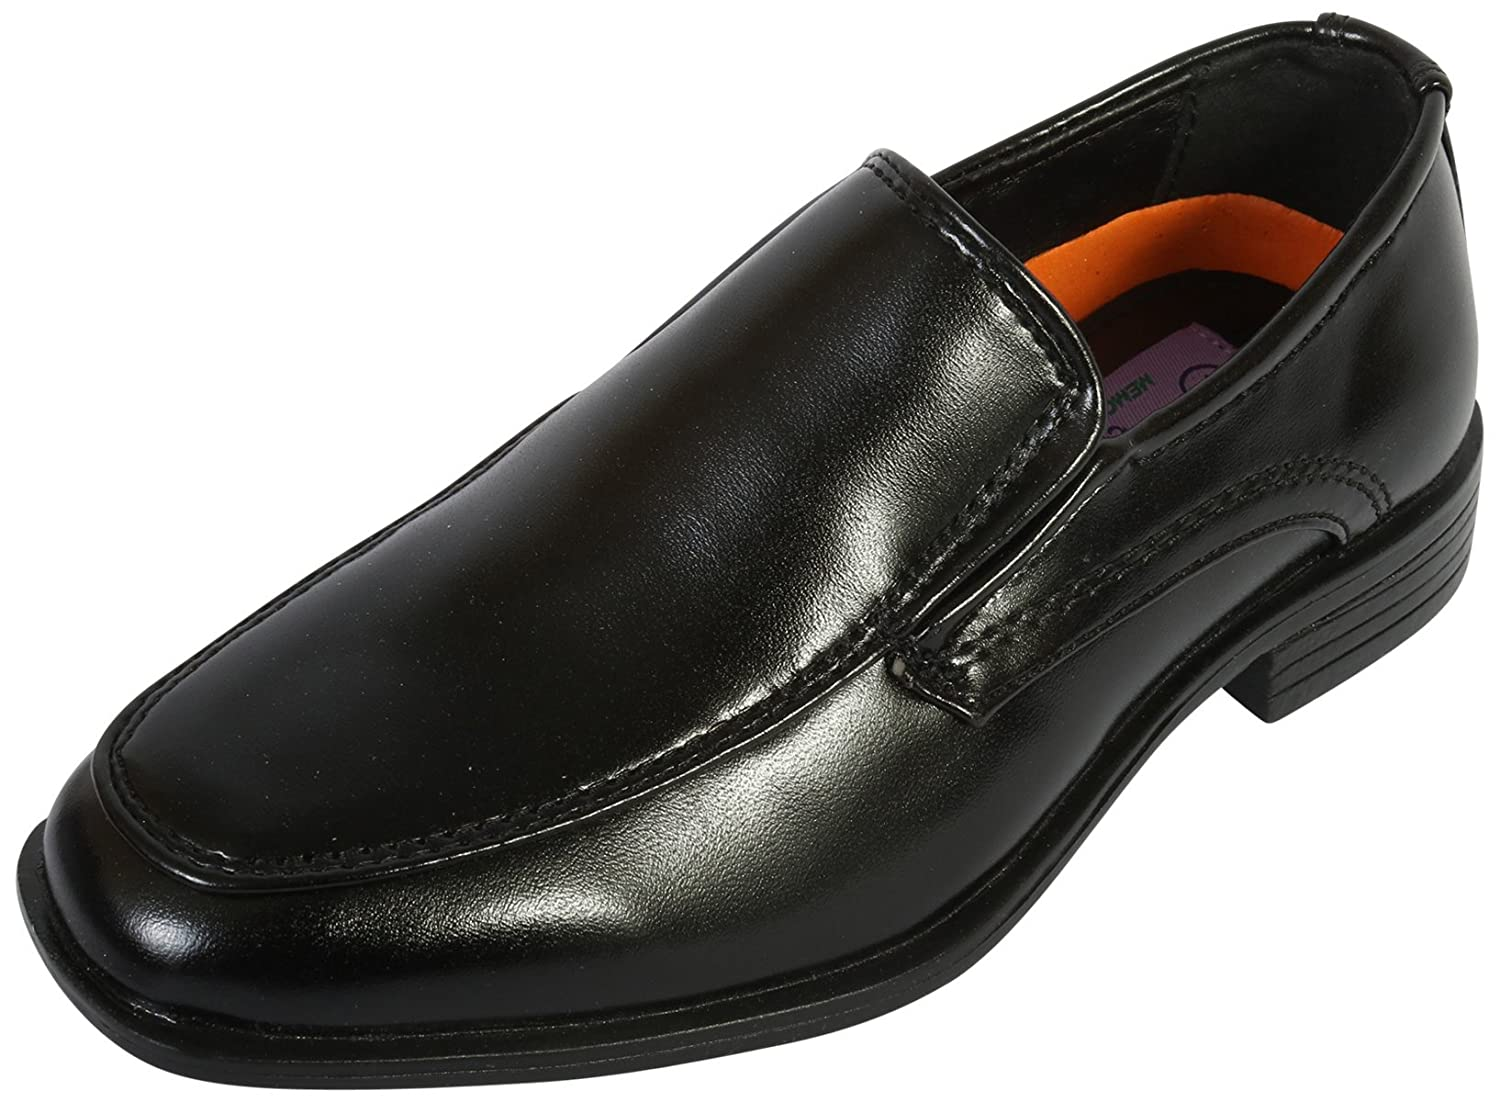 Jodano Collection Boys Comfort Slip On Loafers (Toddler/Little Kid/Big Kid)